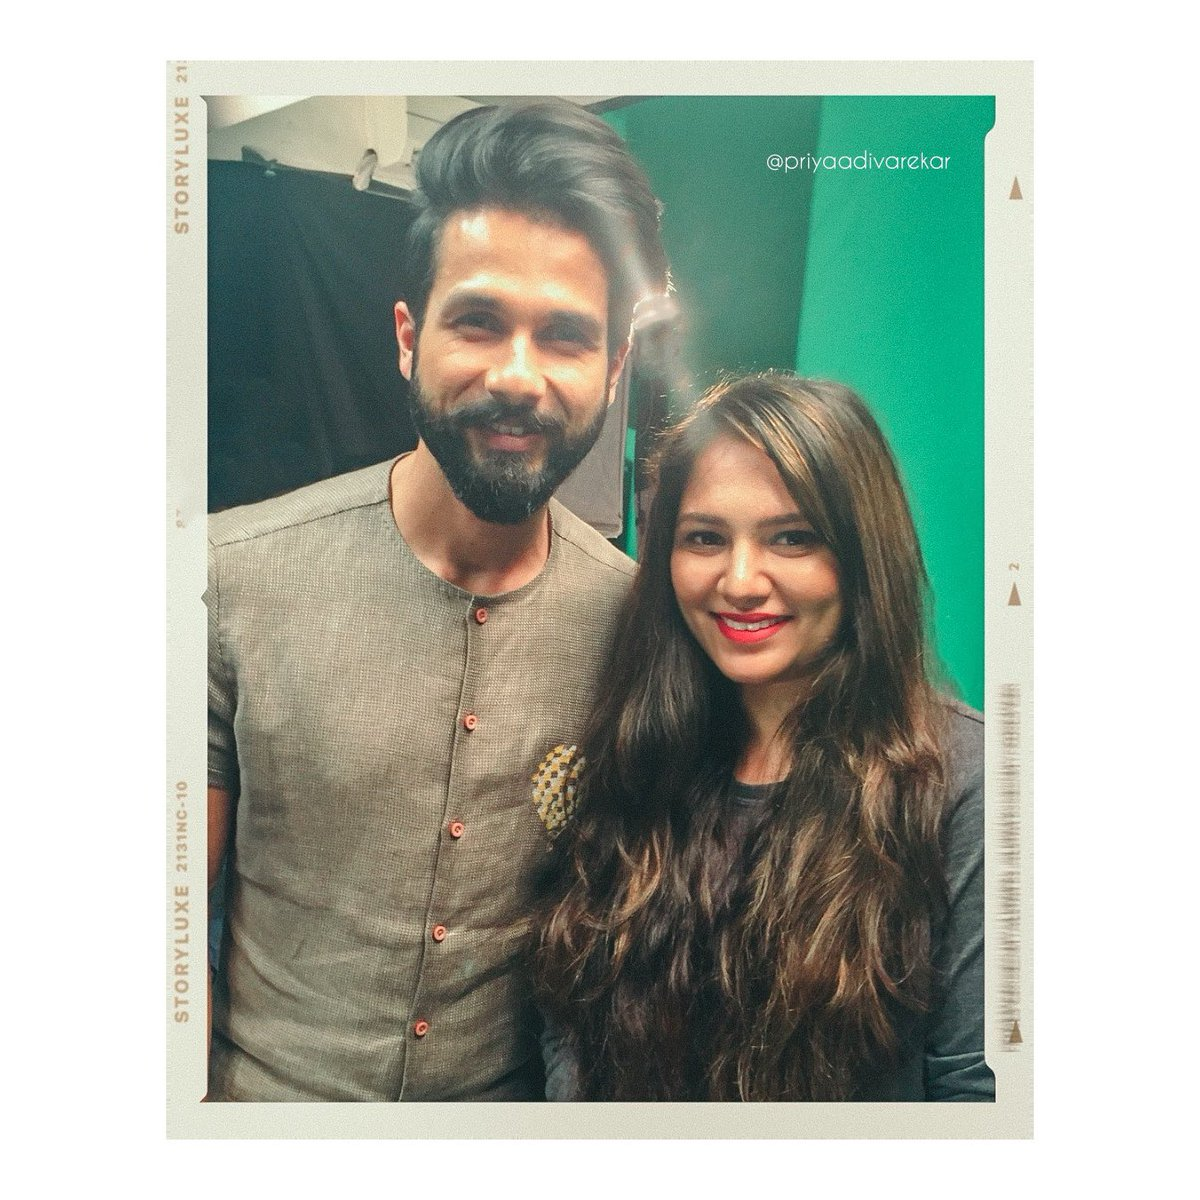 Happy Birthday, @shahidkapoor ✨ You are truly special. I pray that you 'groove your way' through 2021 with tons of good vibes, happiness, love and luck in your life. Don that 'Jersey' and hit it out of the park. Much love ❤️  #HappyBirthdayShahidKapoor